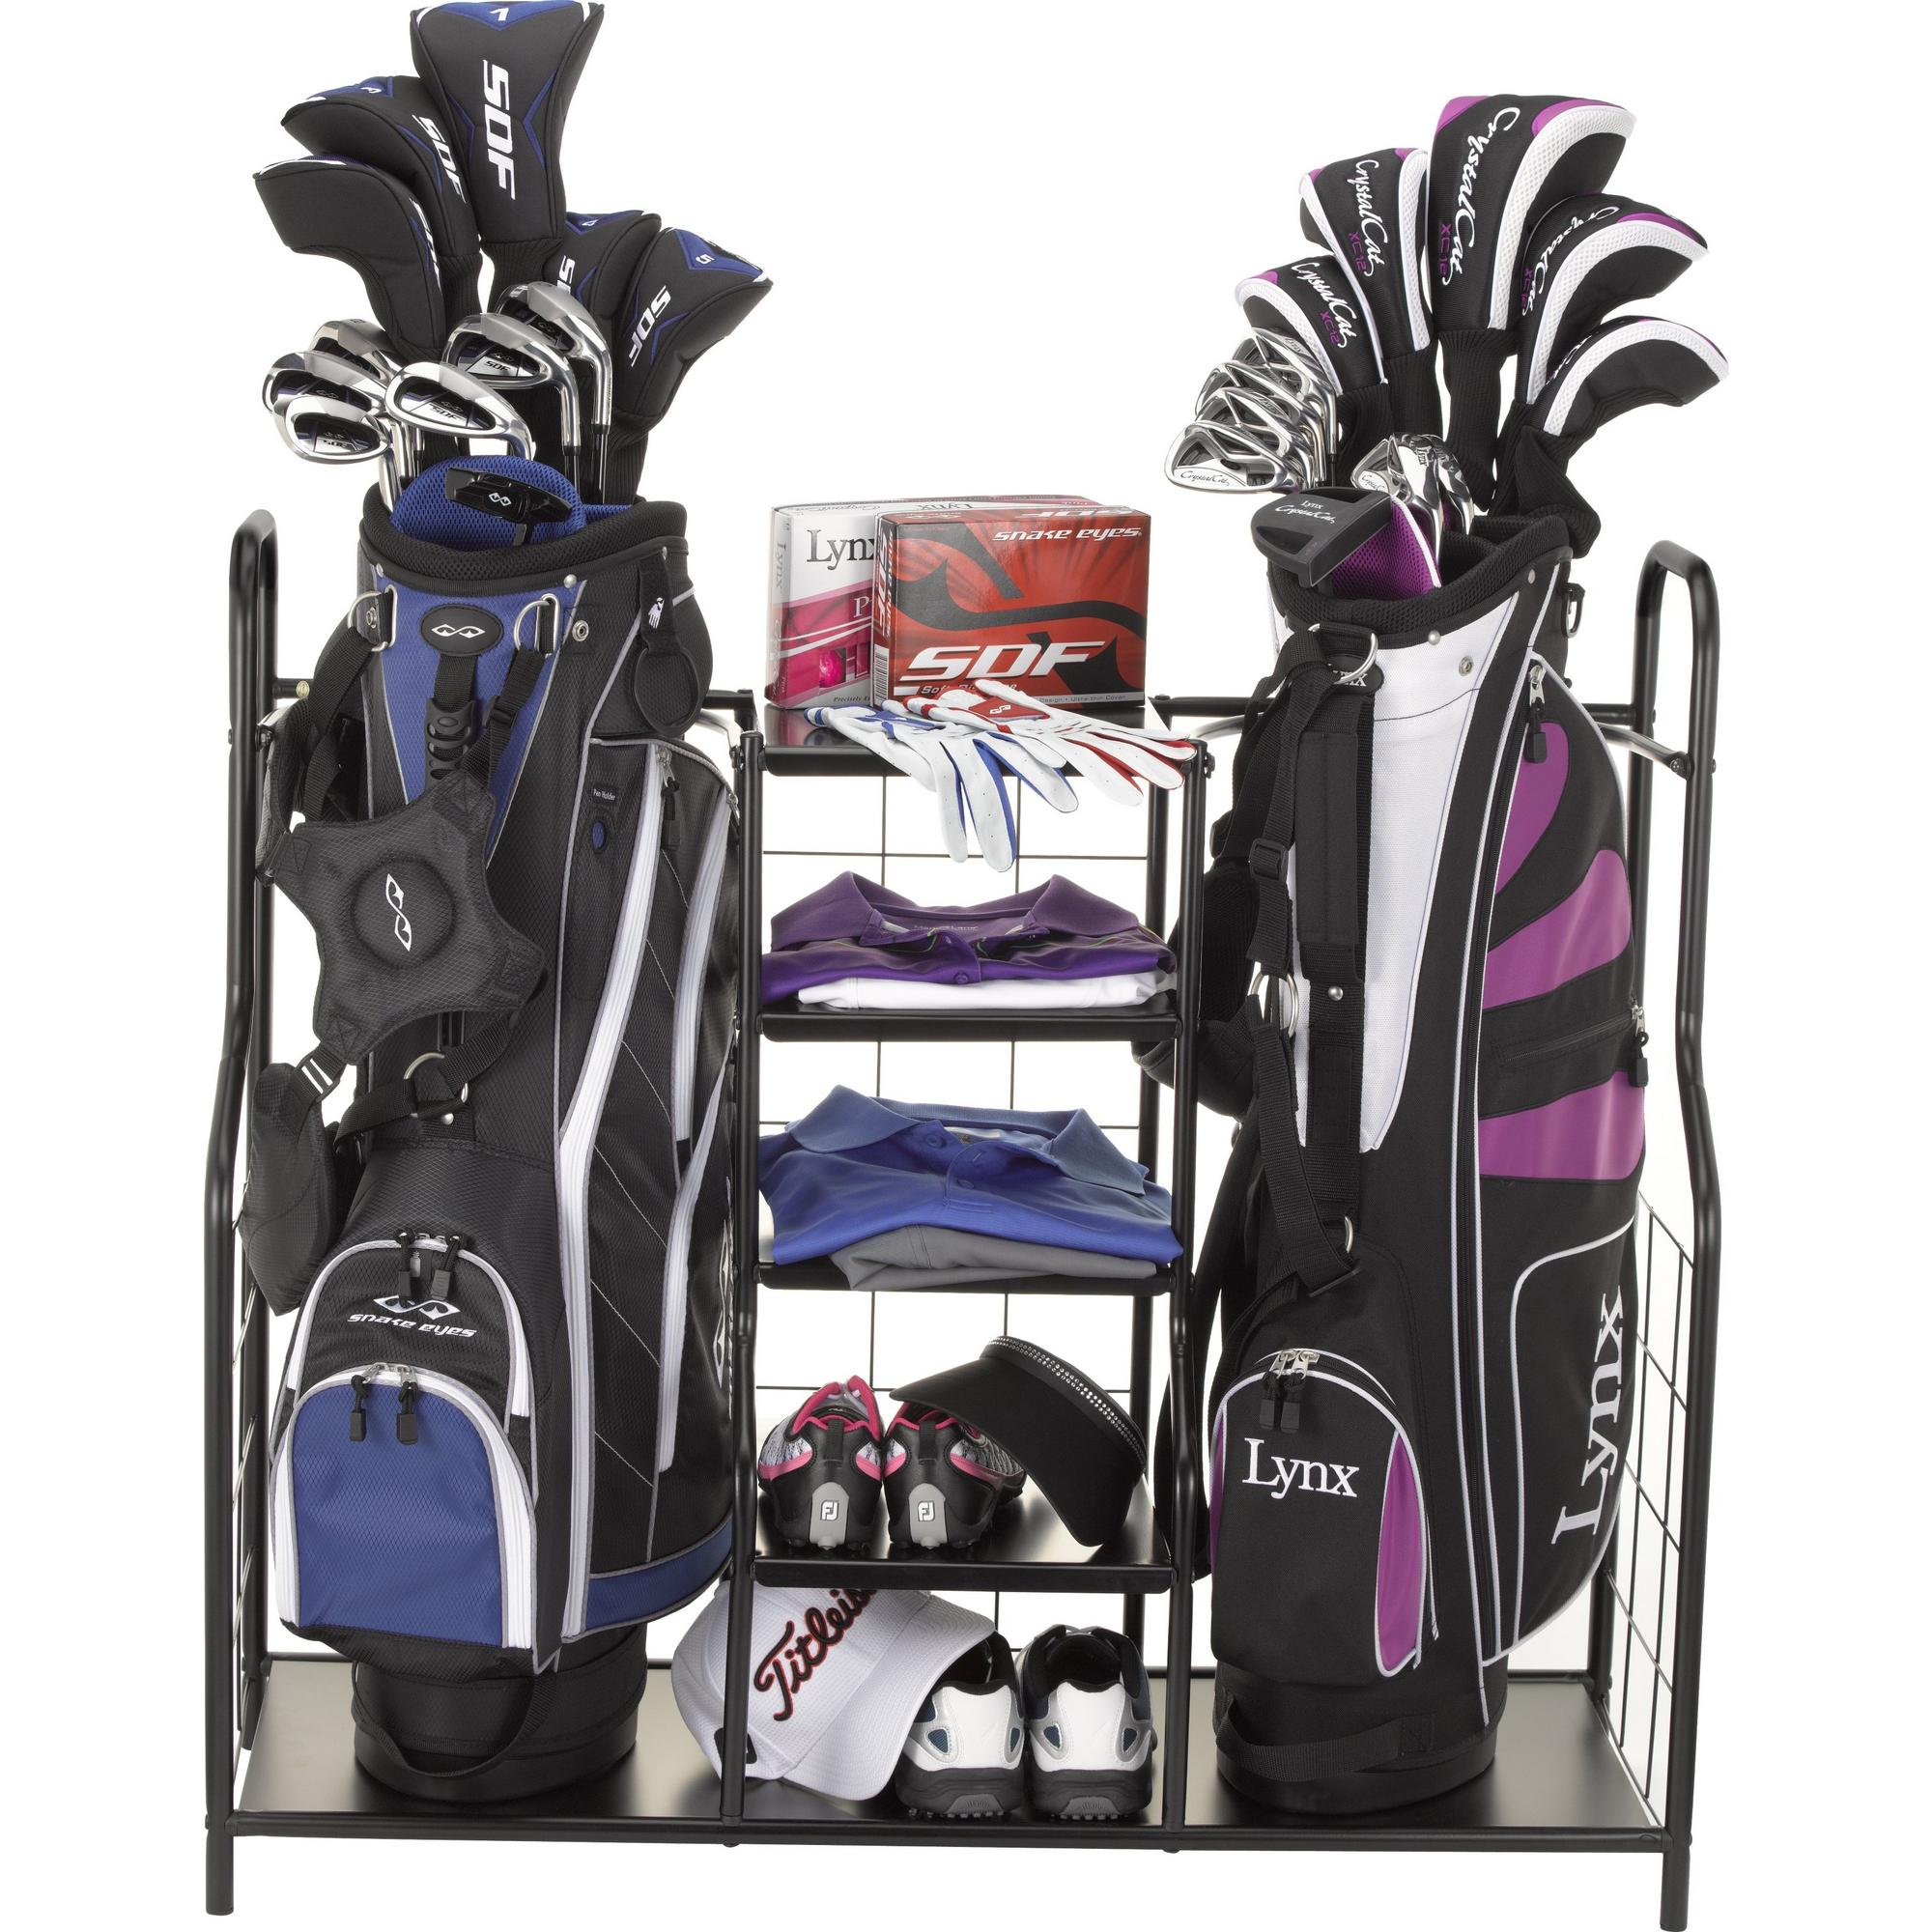 Double Metal Club and Bag Organizer